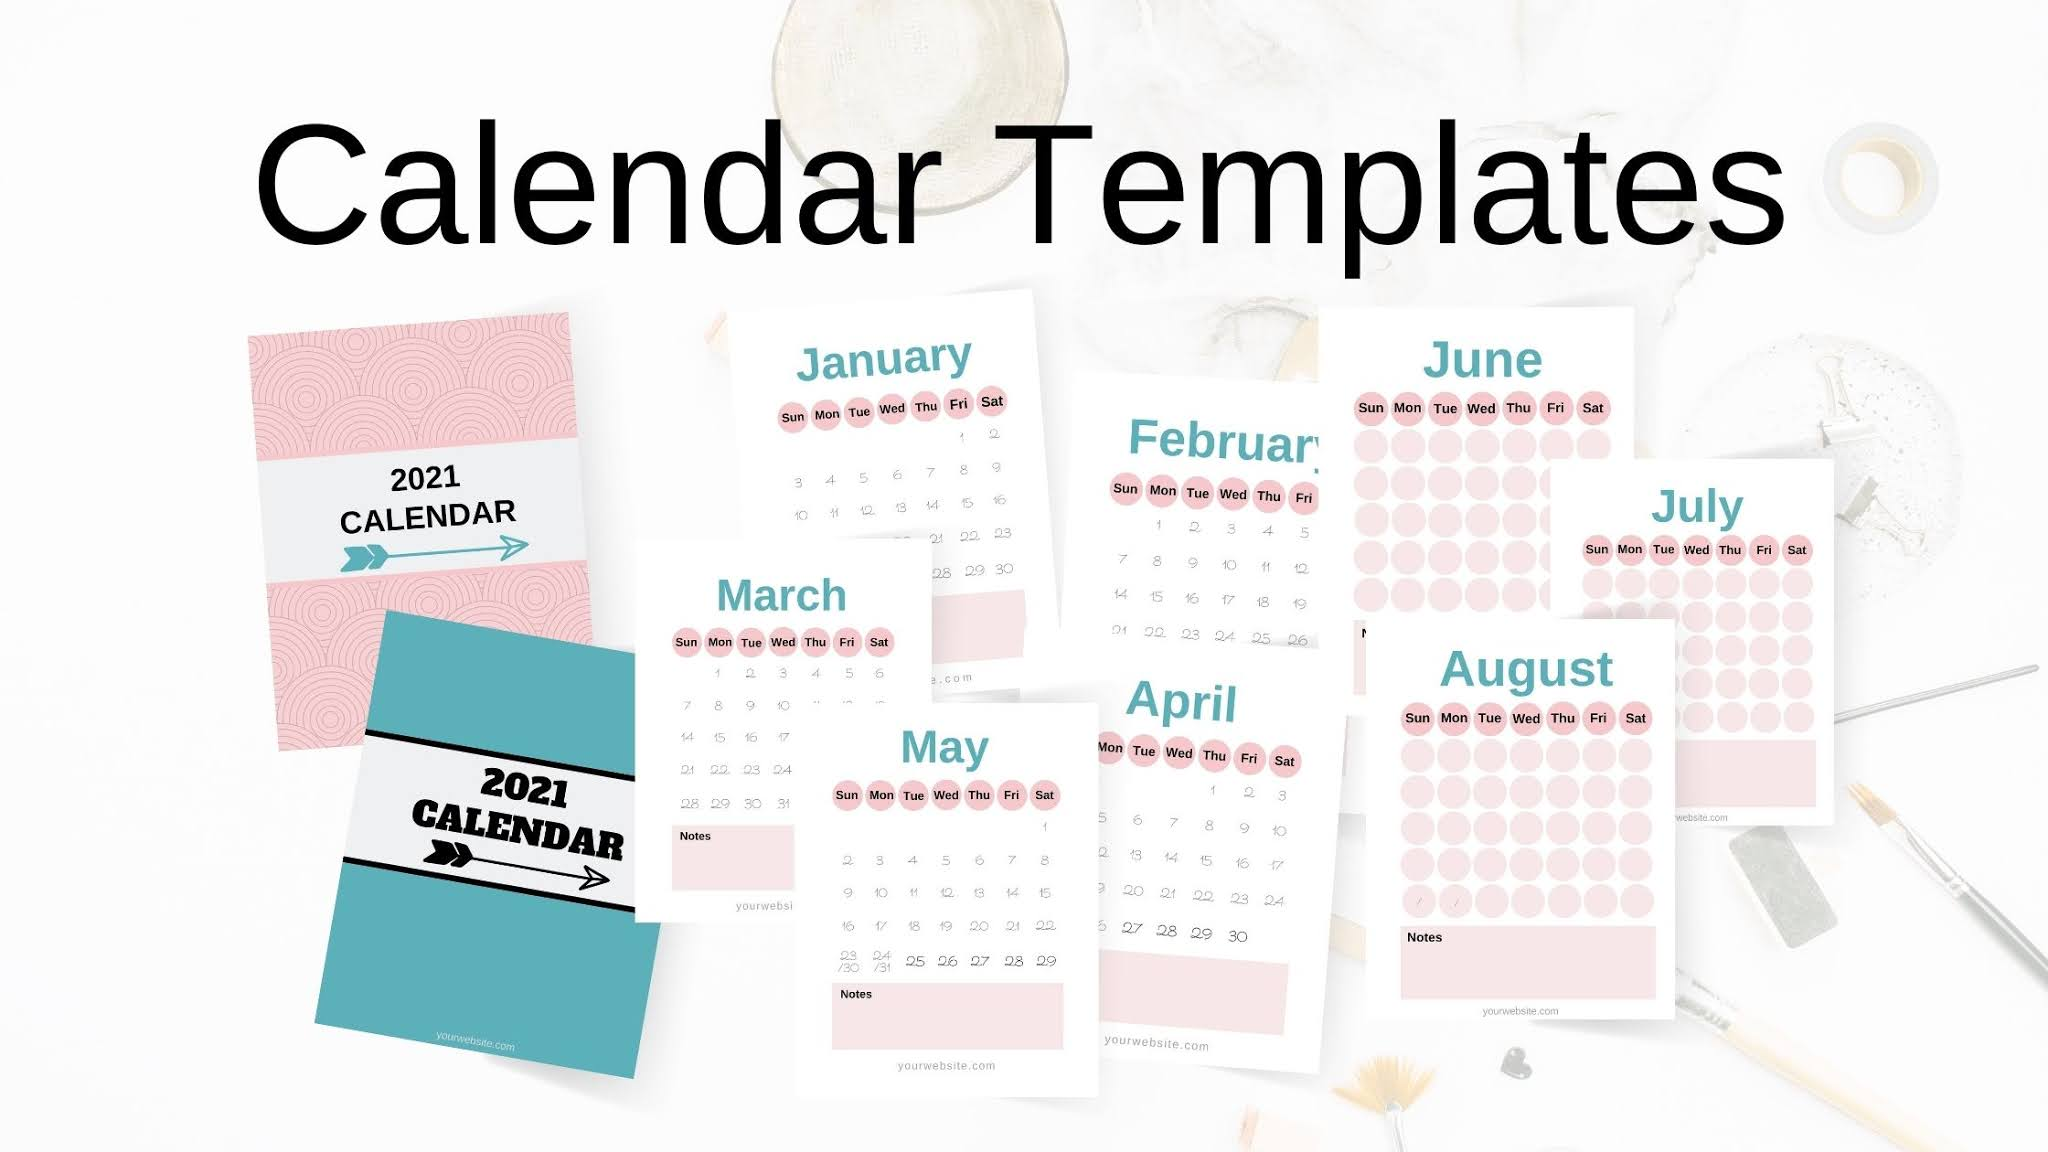 Canva Calendar Templates